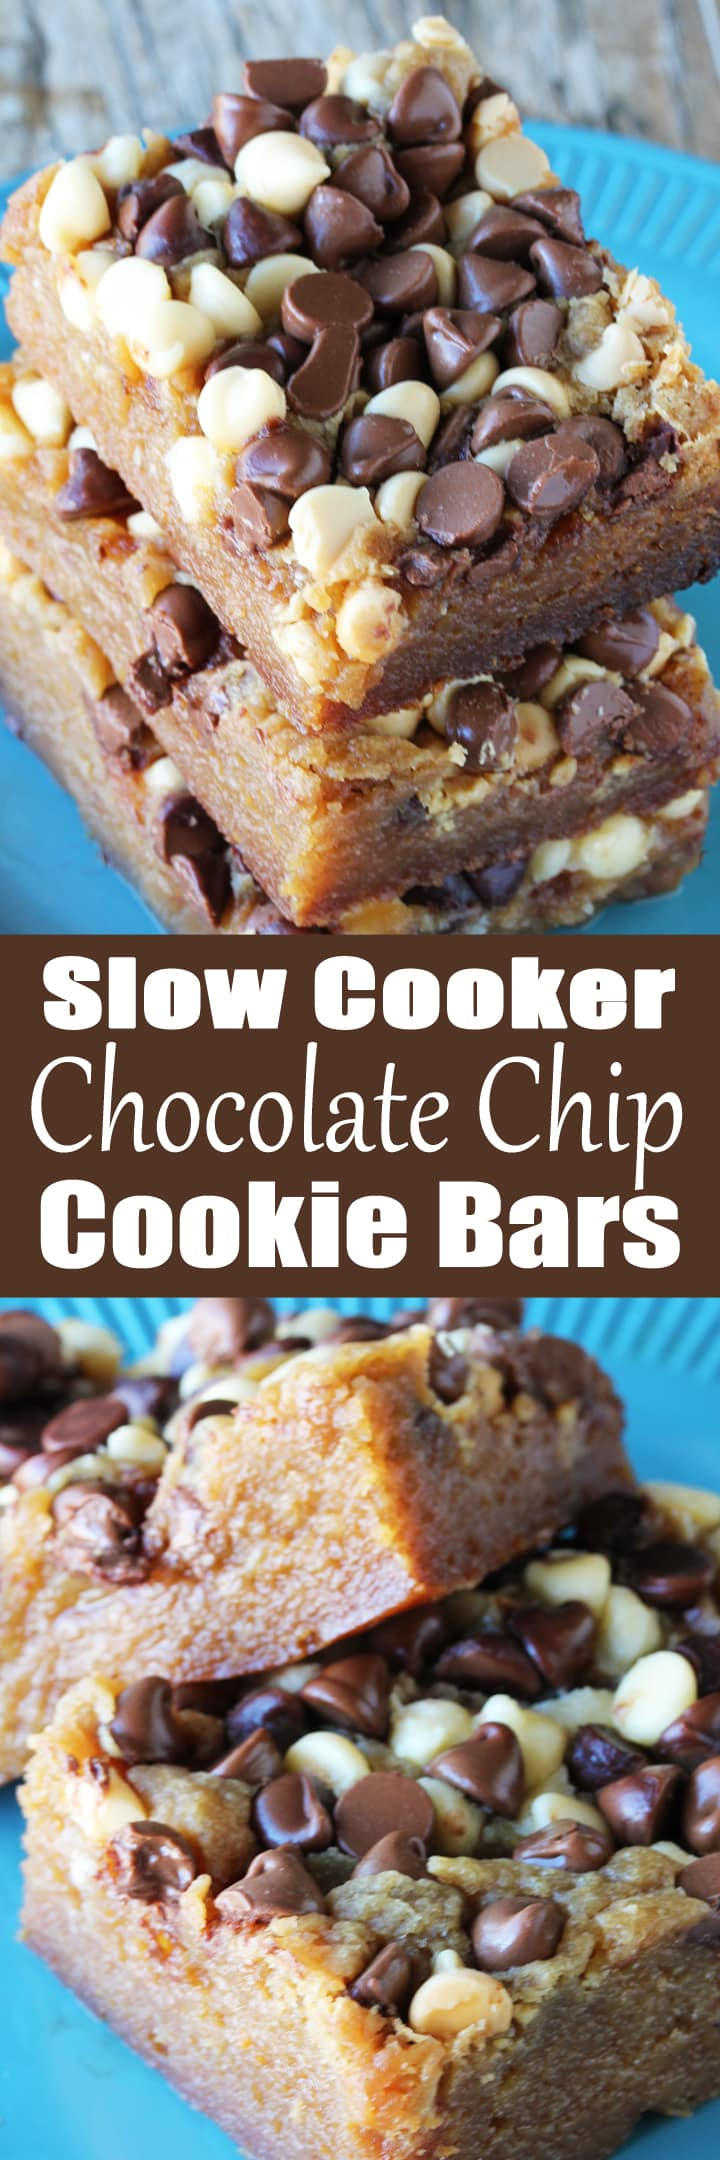 Slow-Cooker-Chocolate-Chip-Cookie-Bars-Pinterest.jpg